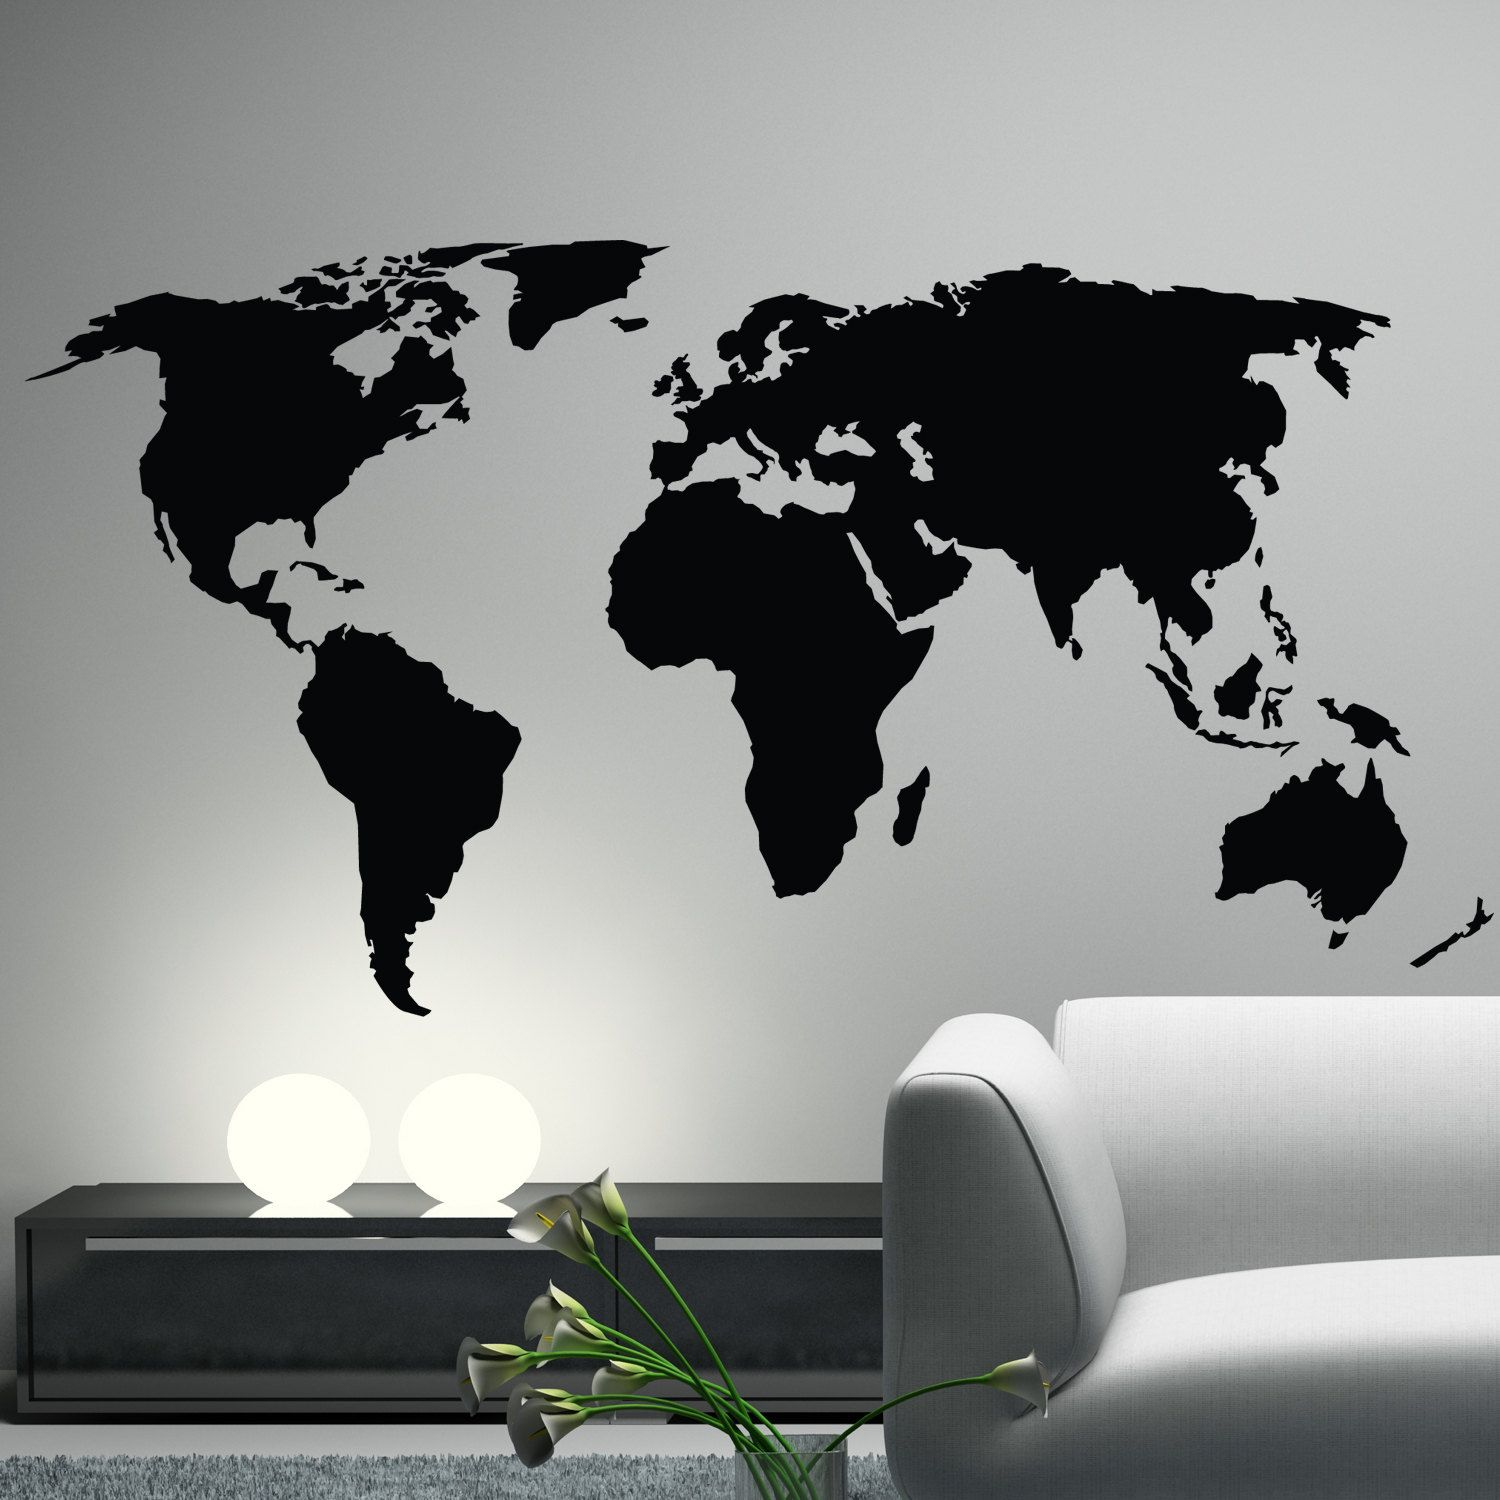 Office decor world map wall decal sticker world country atlas the world map wall decal sticker world country atlas the whole world vinyl art gumiabroncs Image collections